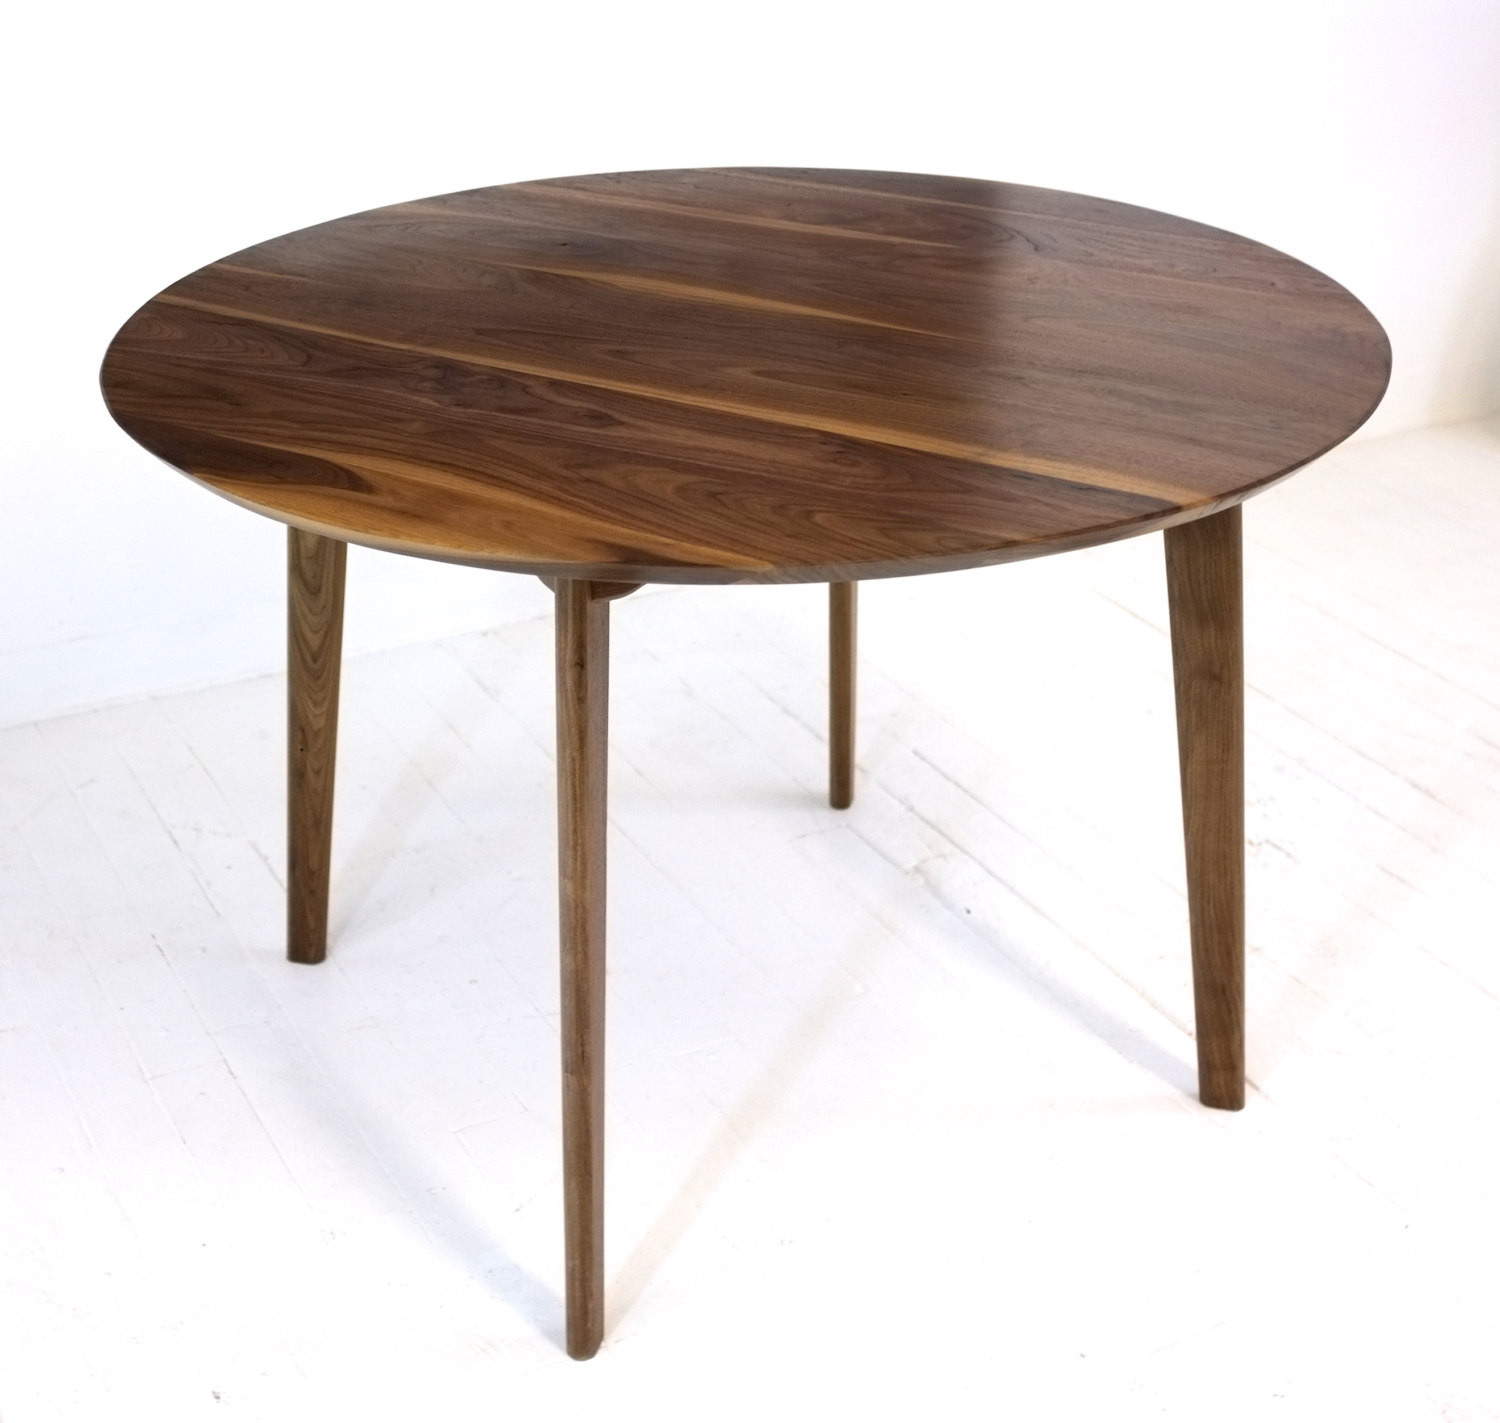 Best ideas about Mid Century Modern Round Dining Table . Save or Pin Mid Century Modern Round Dining Table Cafe Table Solid Now.